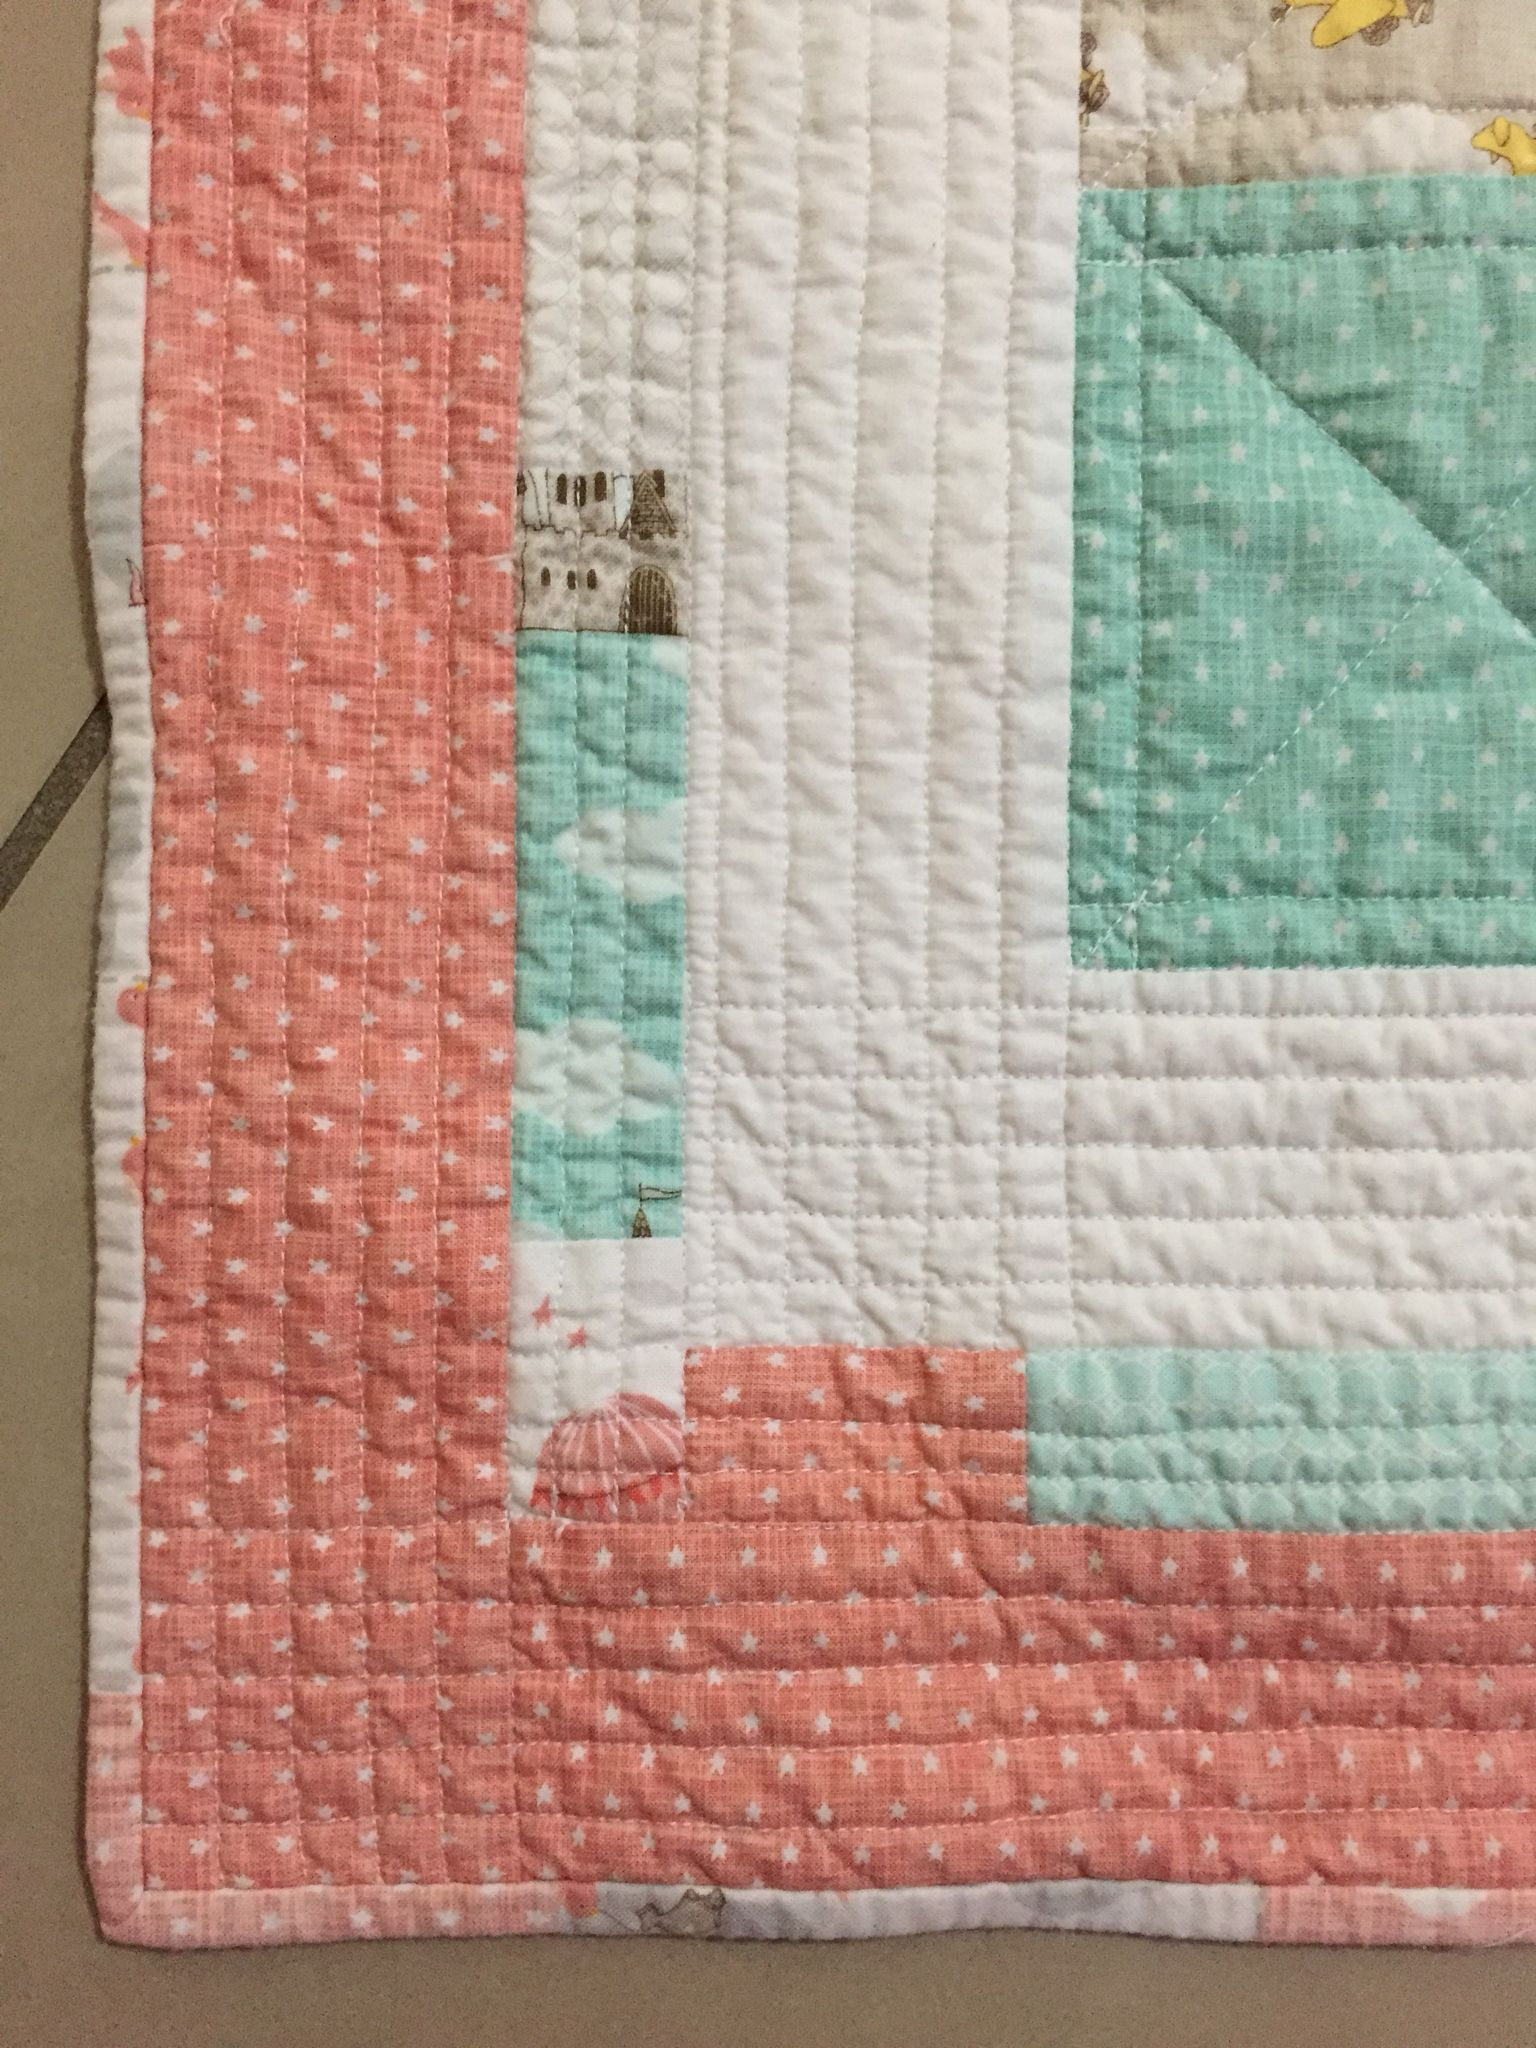 Straight line quilting. Baby quilt. Moda fabric | patchwork quilts ... : fabric lines for quilting - Adamdwight.com